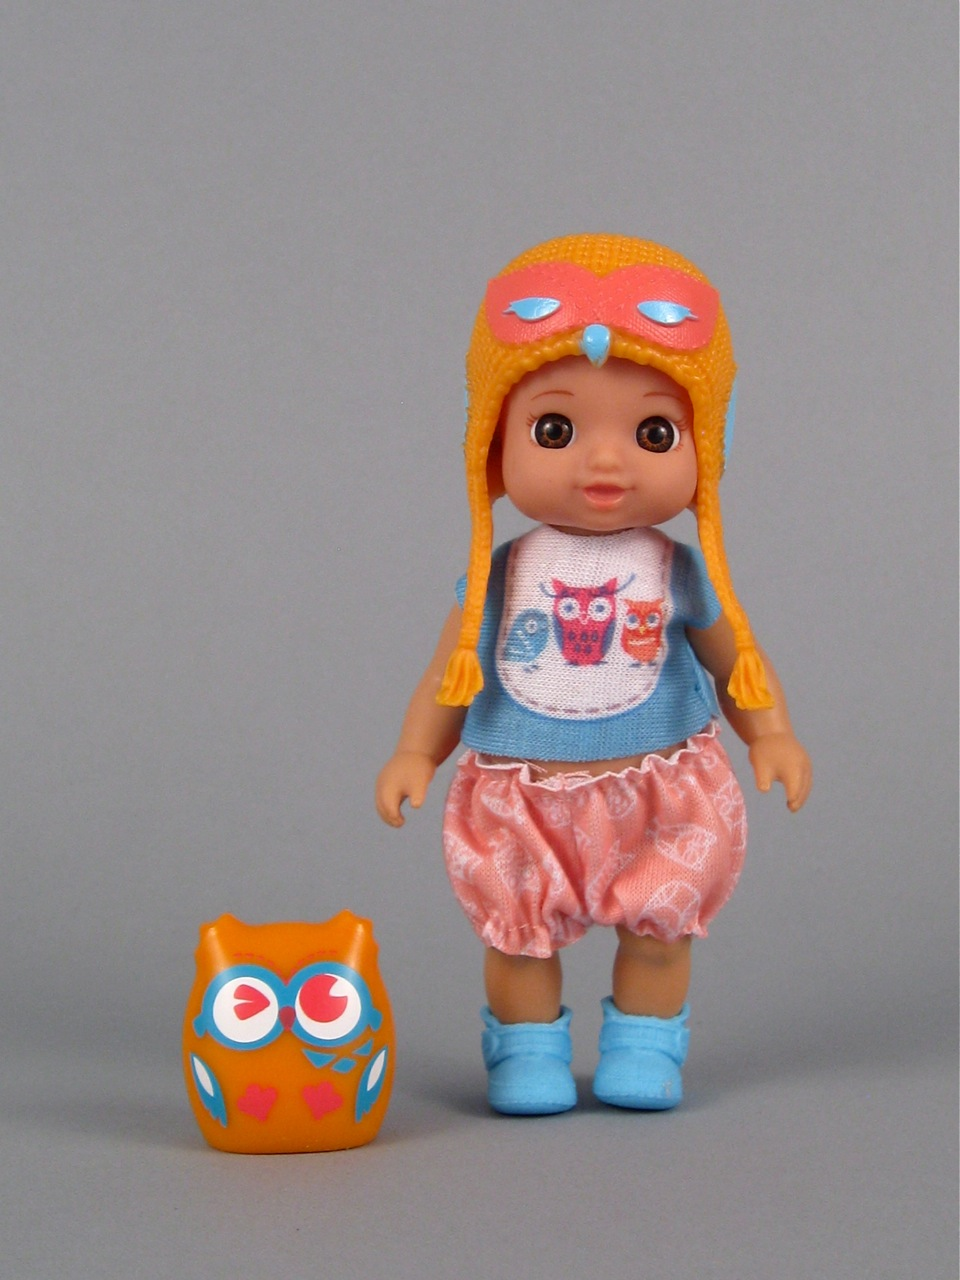 Chou Chou Birdies doll